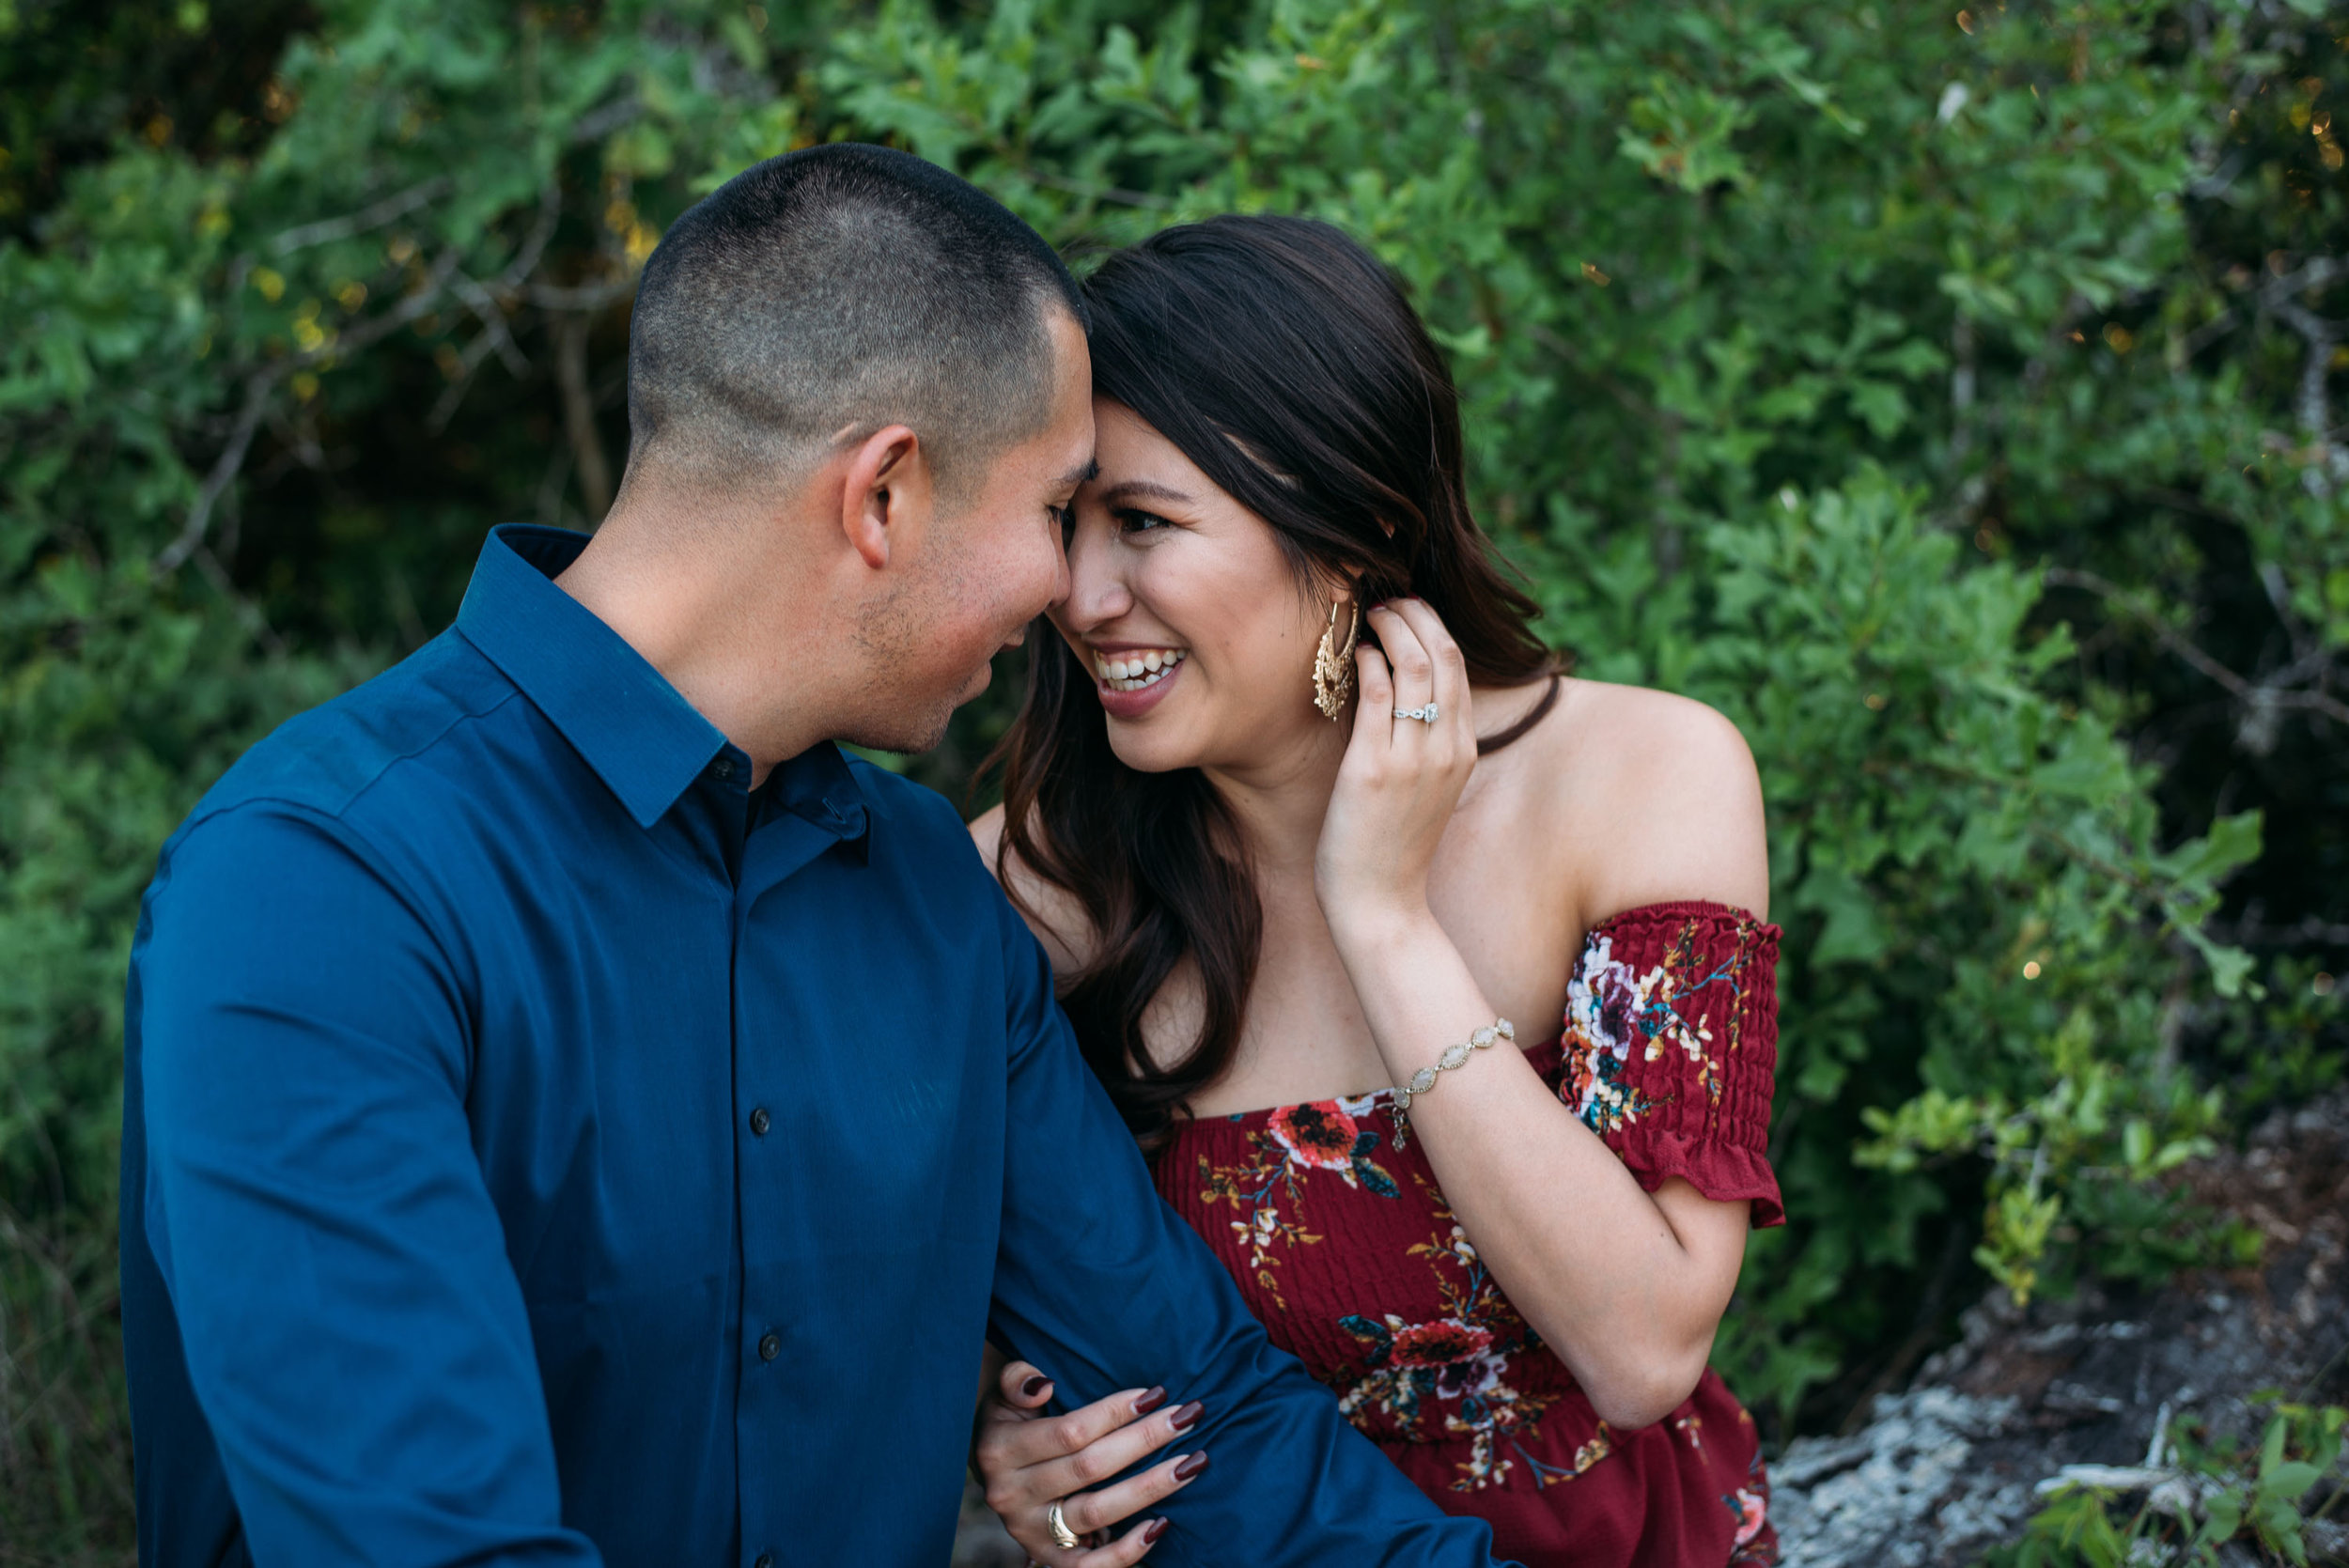 Aggie_Engagement_CollegeStation_LickCreekPark_06.jpg